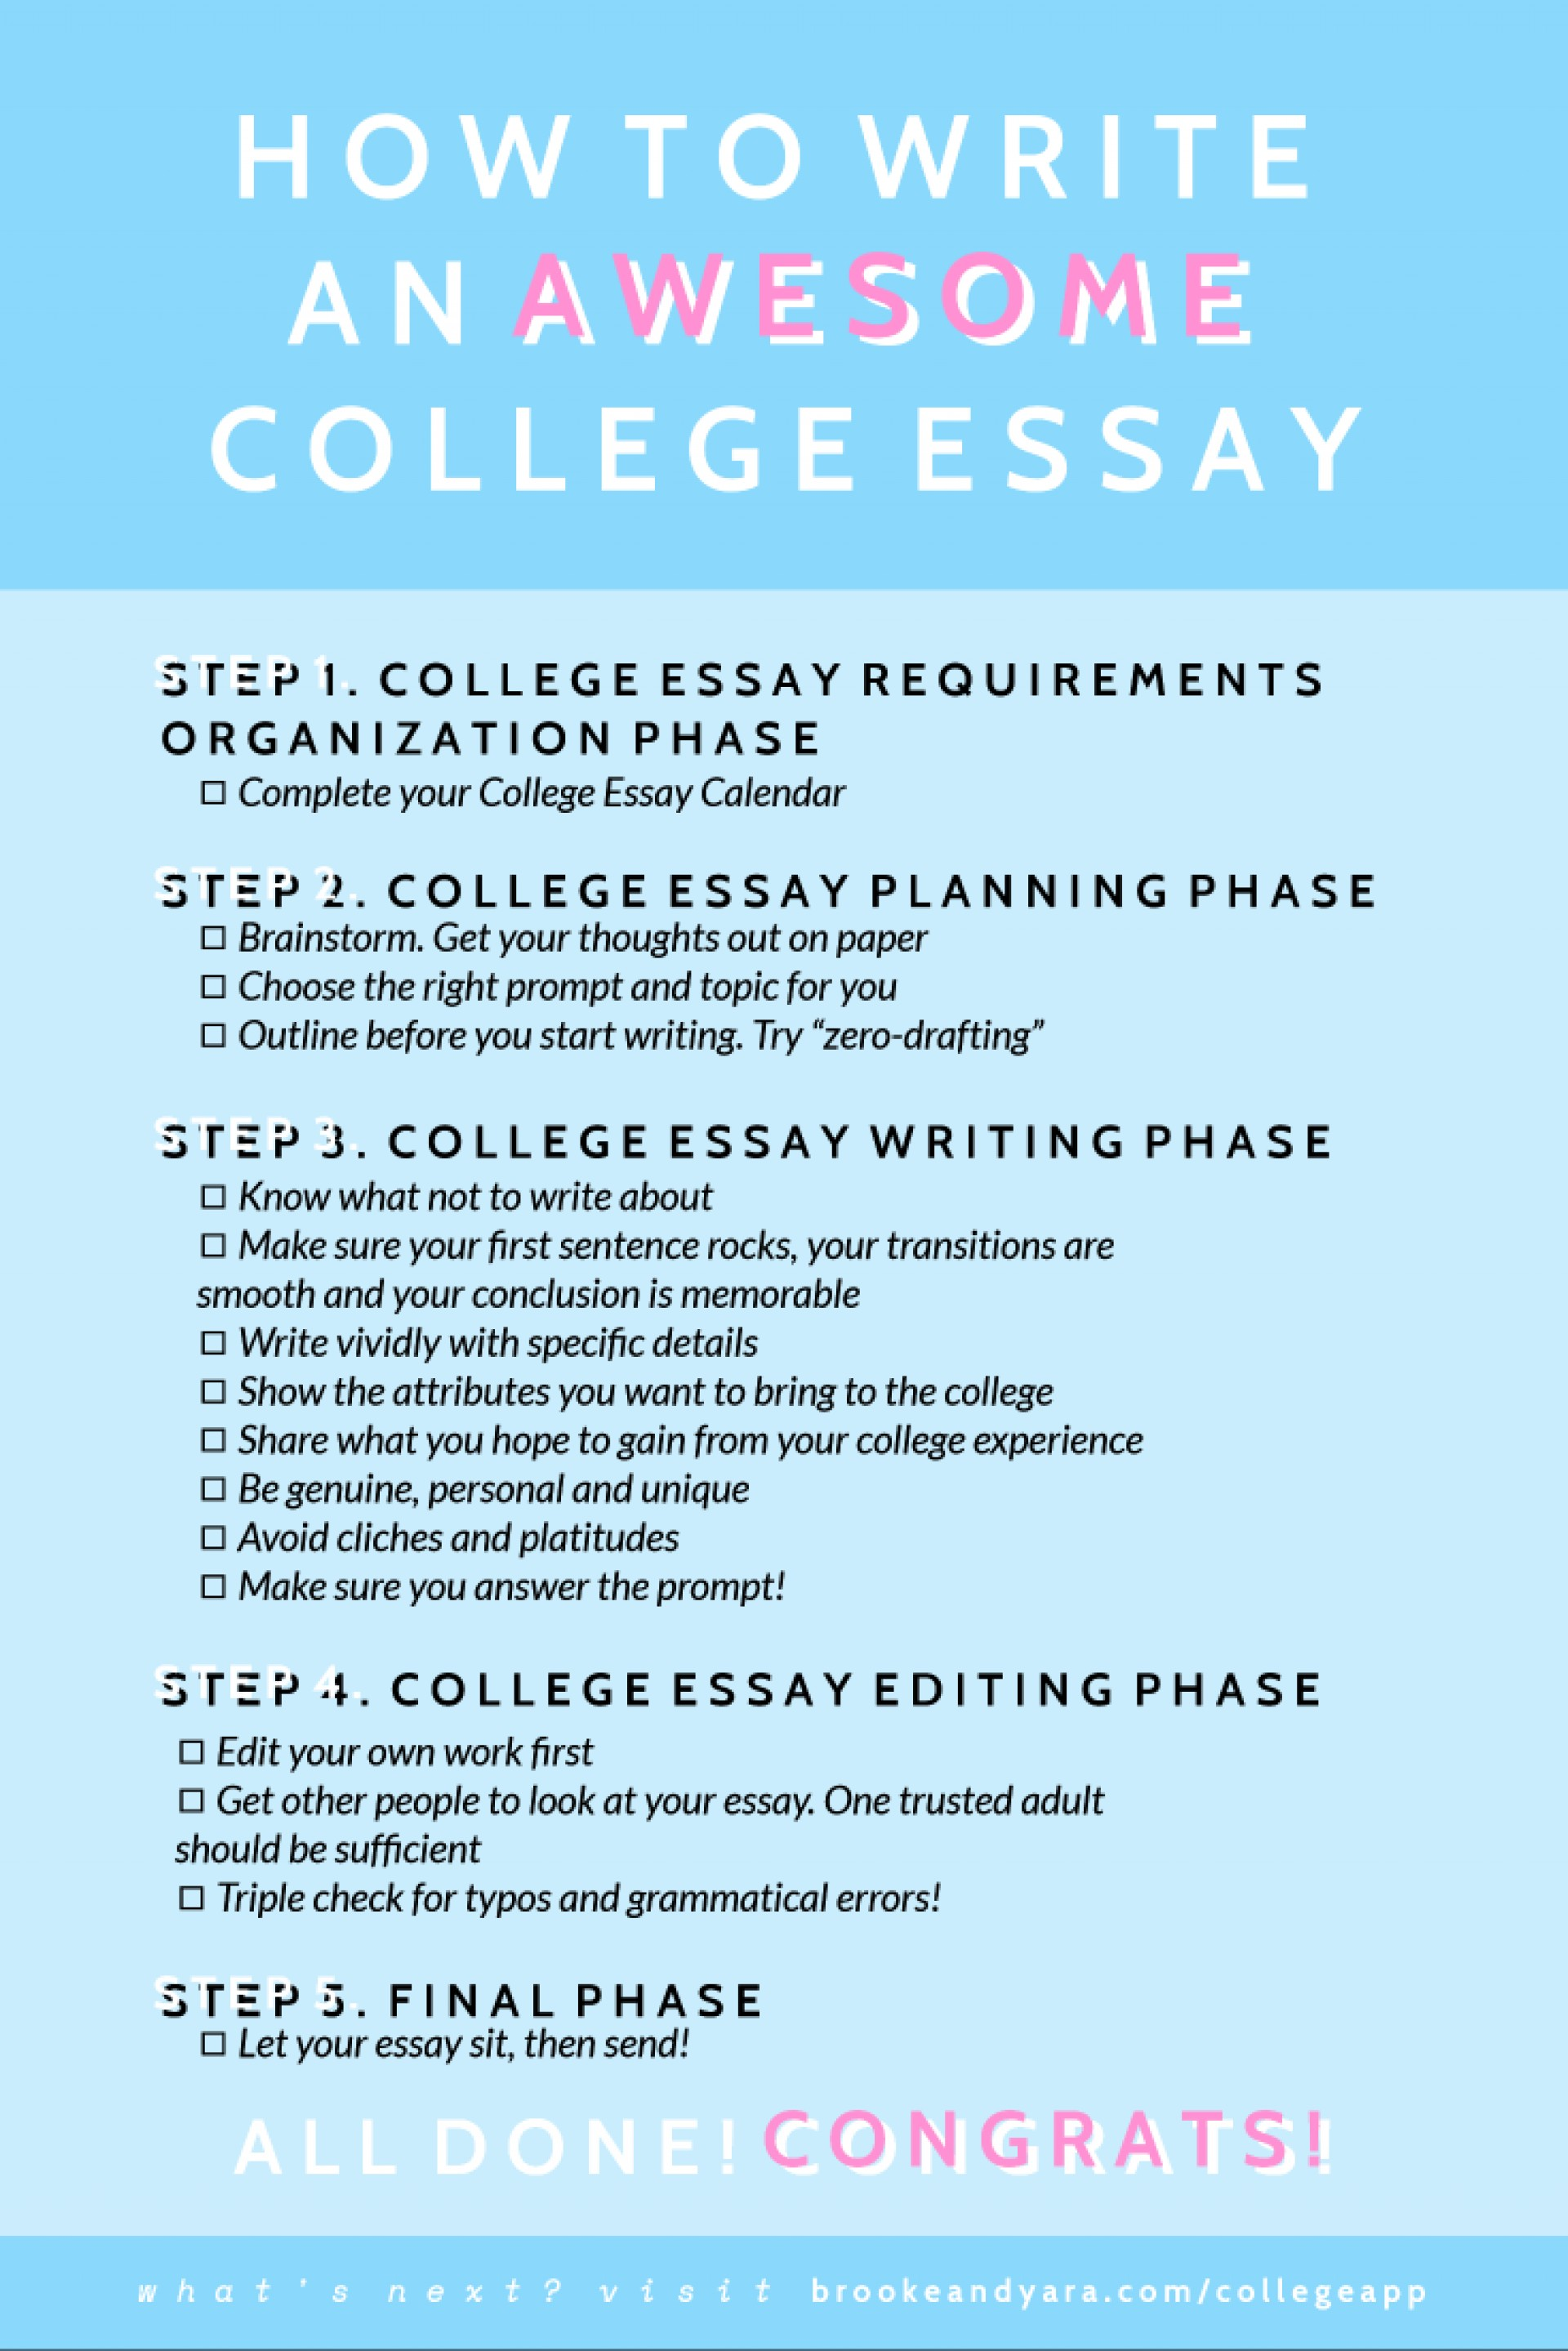 014 2336170977 Personal College Essays Example Stirring Essay Prompt Samples Best Prompts 2017 Uc 1920